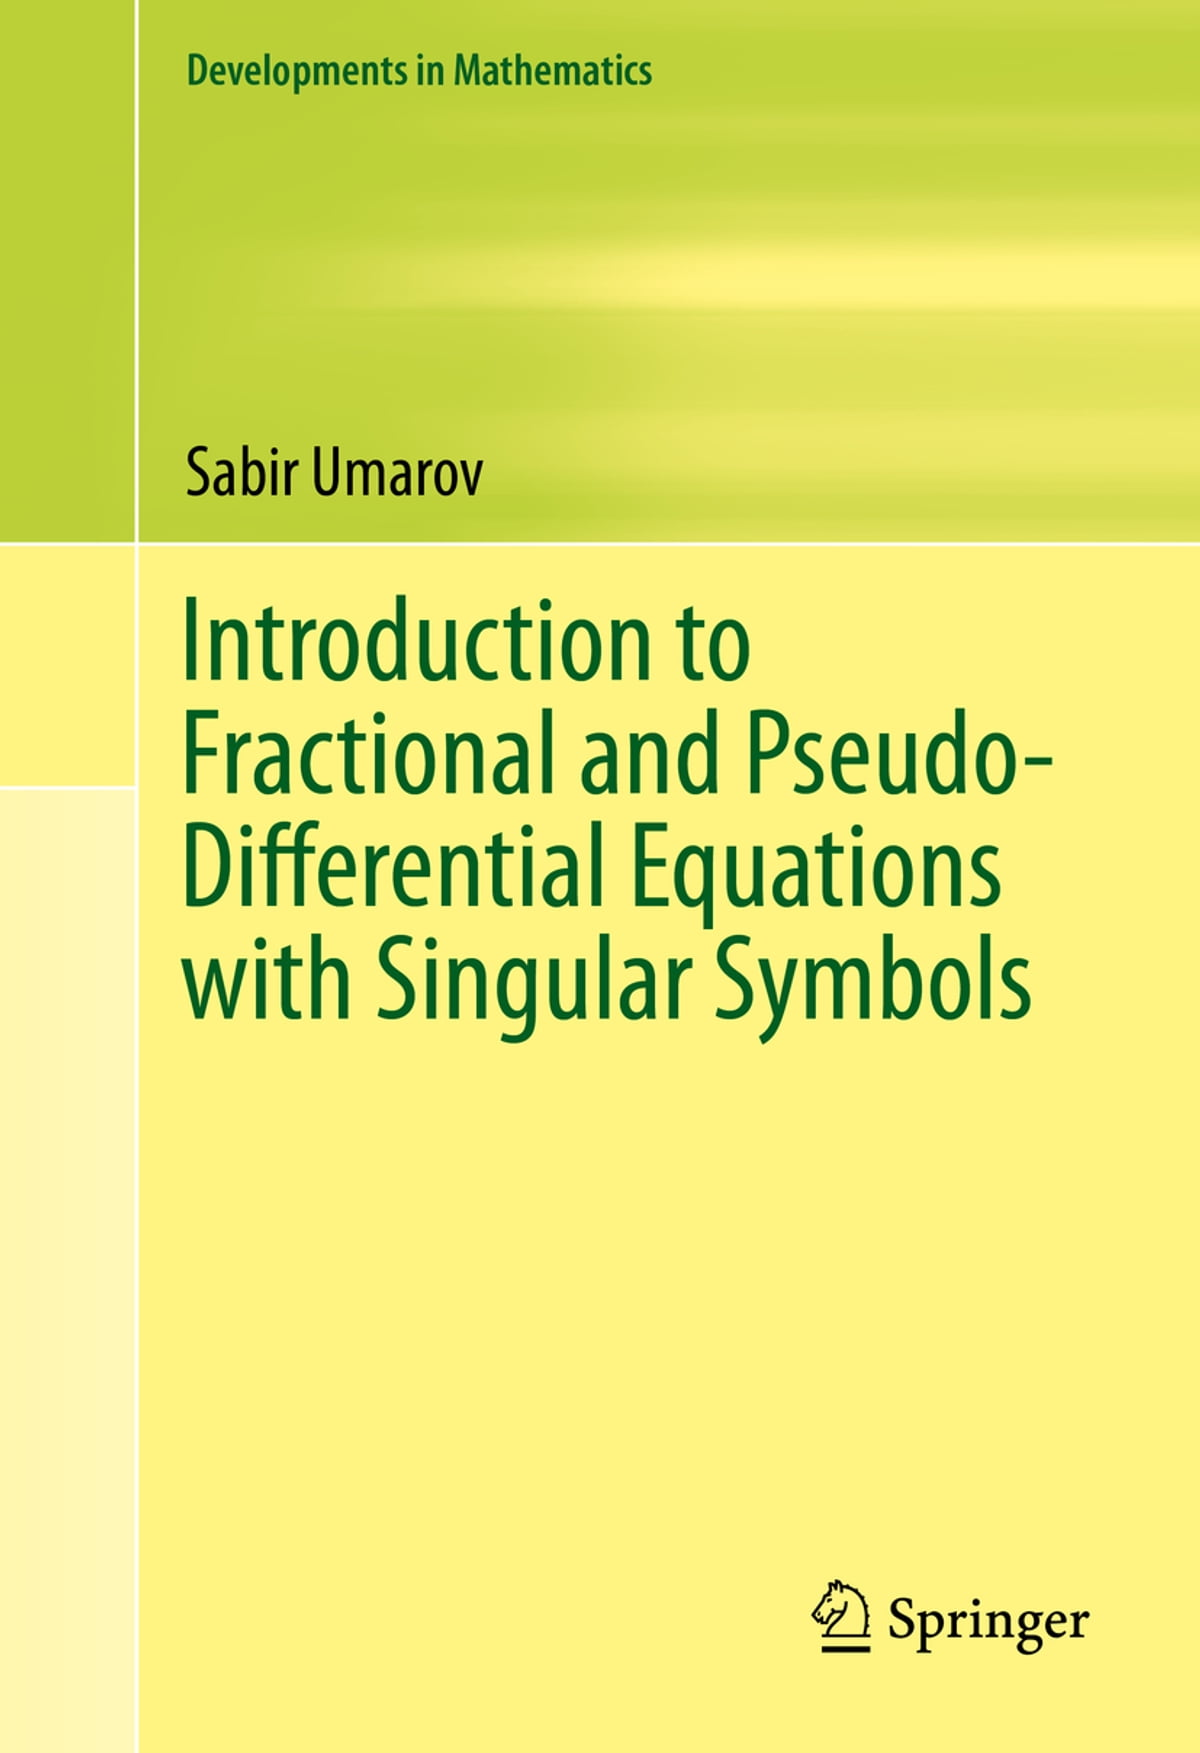 Introduction to Fractional and Pseudo-Differential Equations with Singular  Symbols eBook by Sabir Umarov - 9783319207711 | Rakuten Kobo